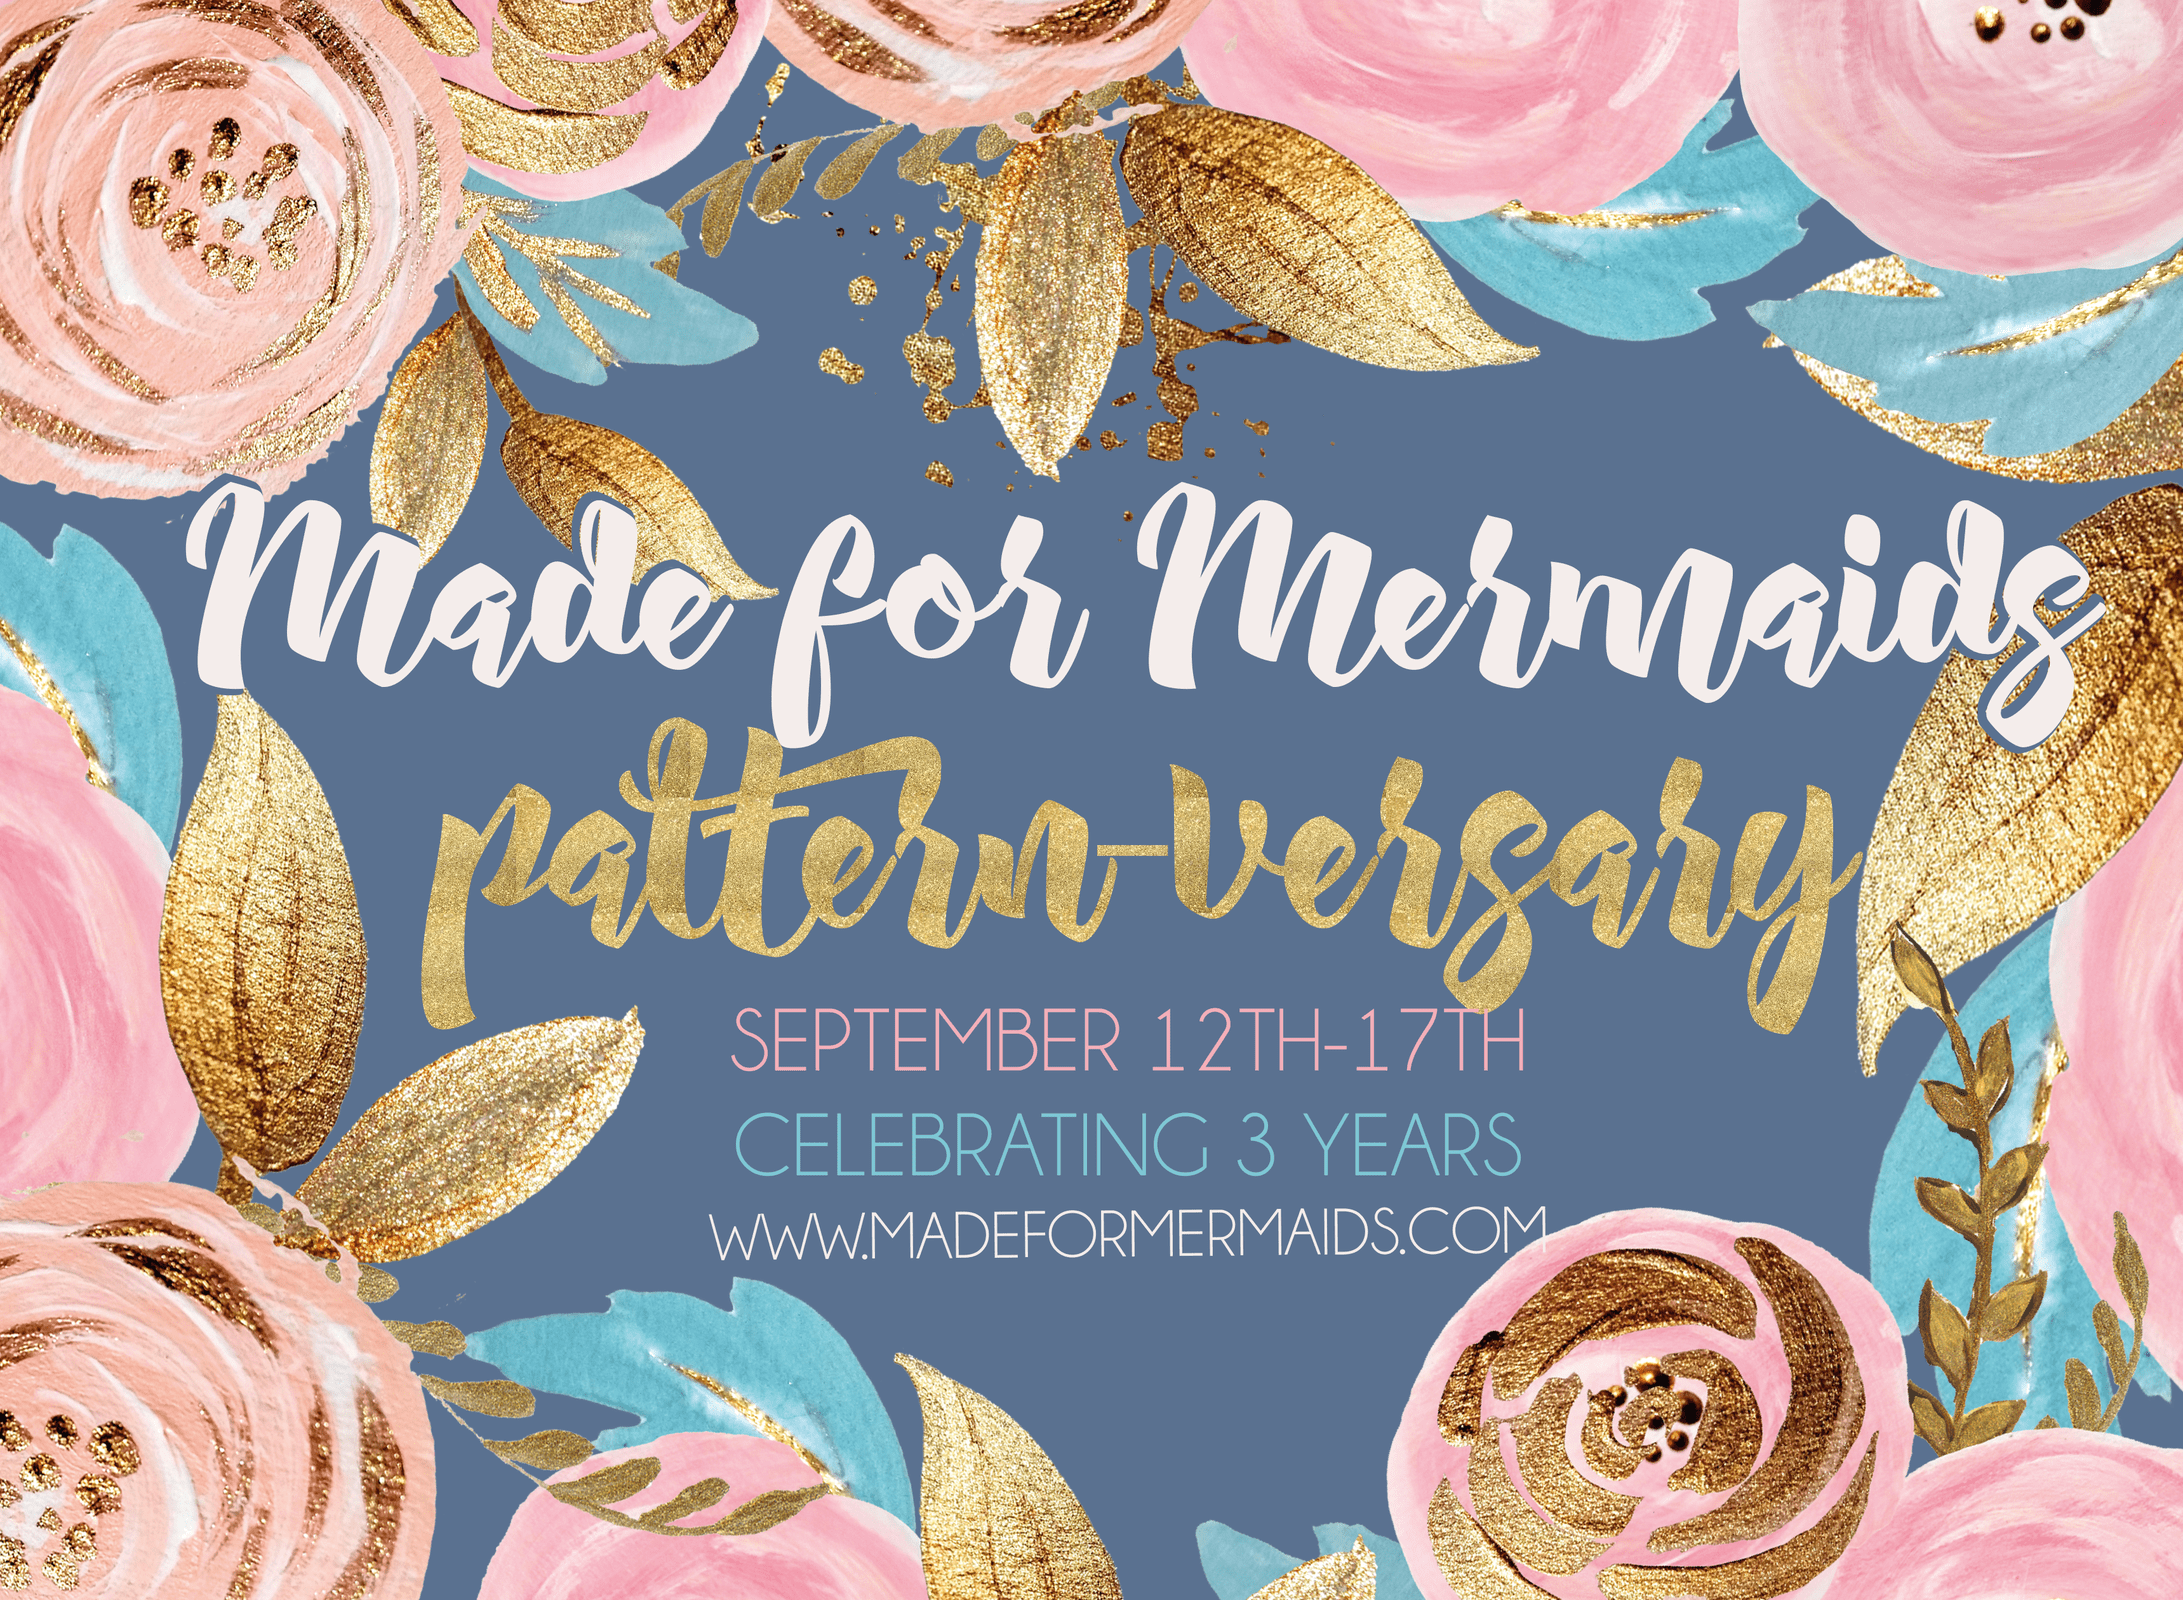 Celebrating 3 years of Made for Mermaids- Pattern-versary sale & giveaway!